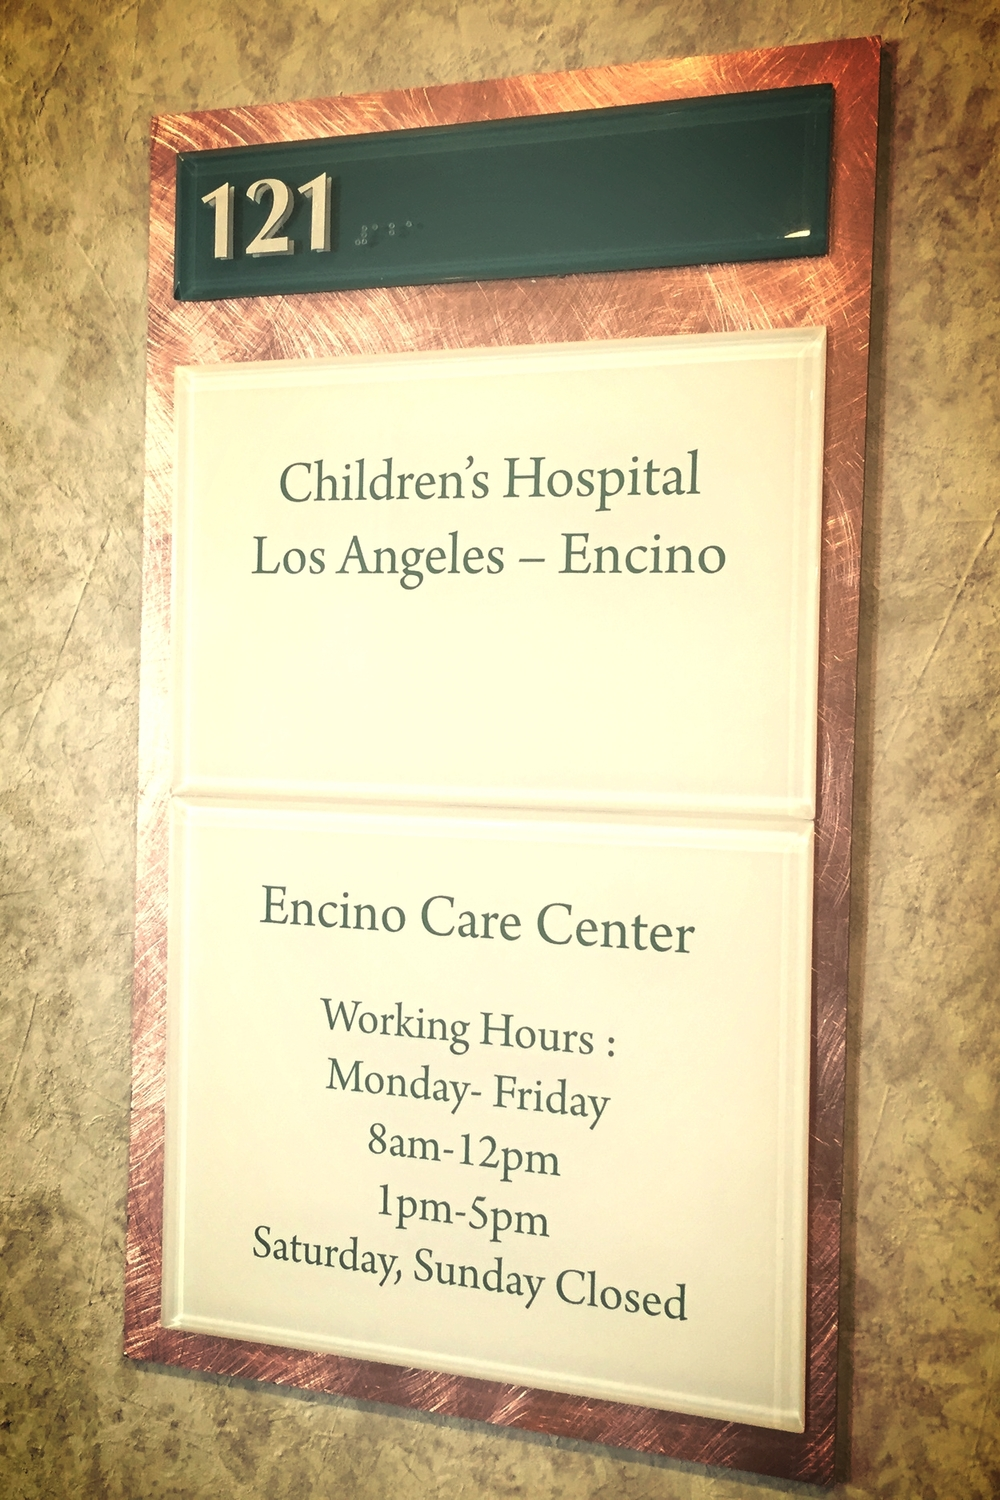 ChildrensHospitalLosAngeles_Encino_SuiteSign_PremiumSignSolutions